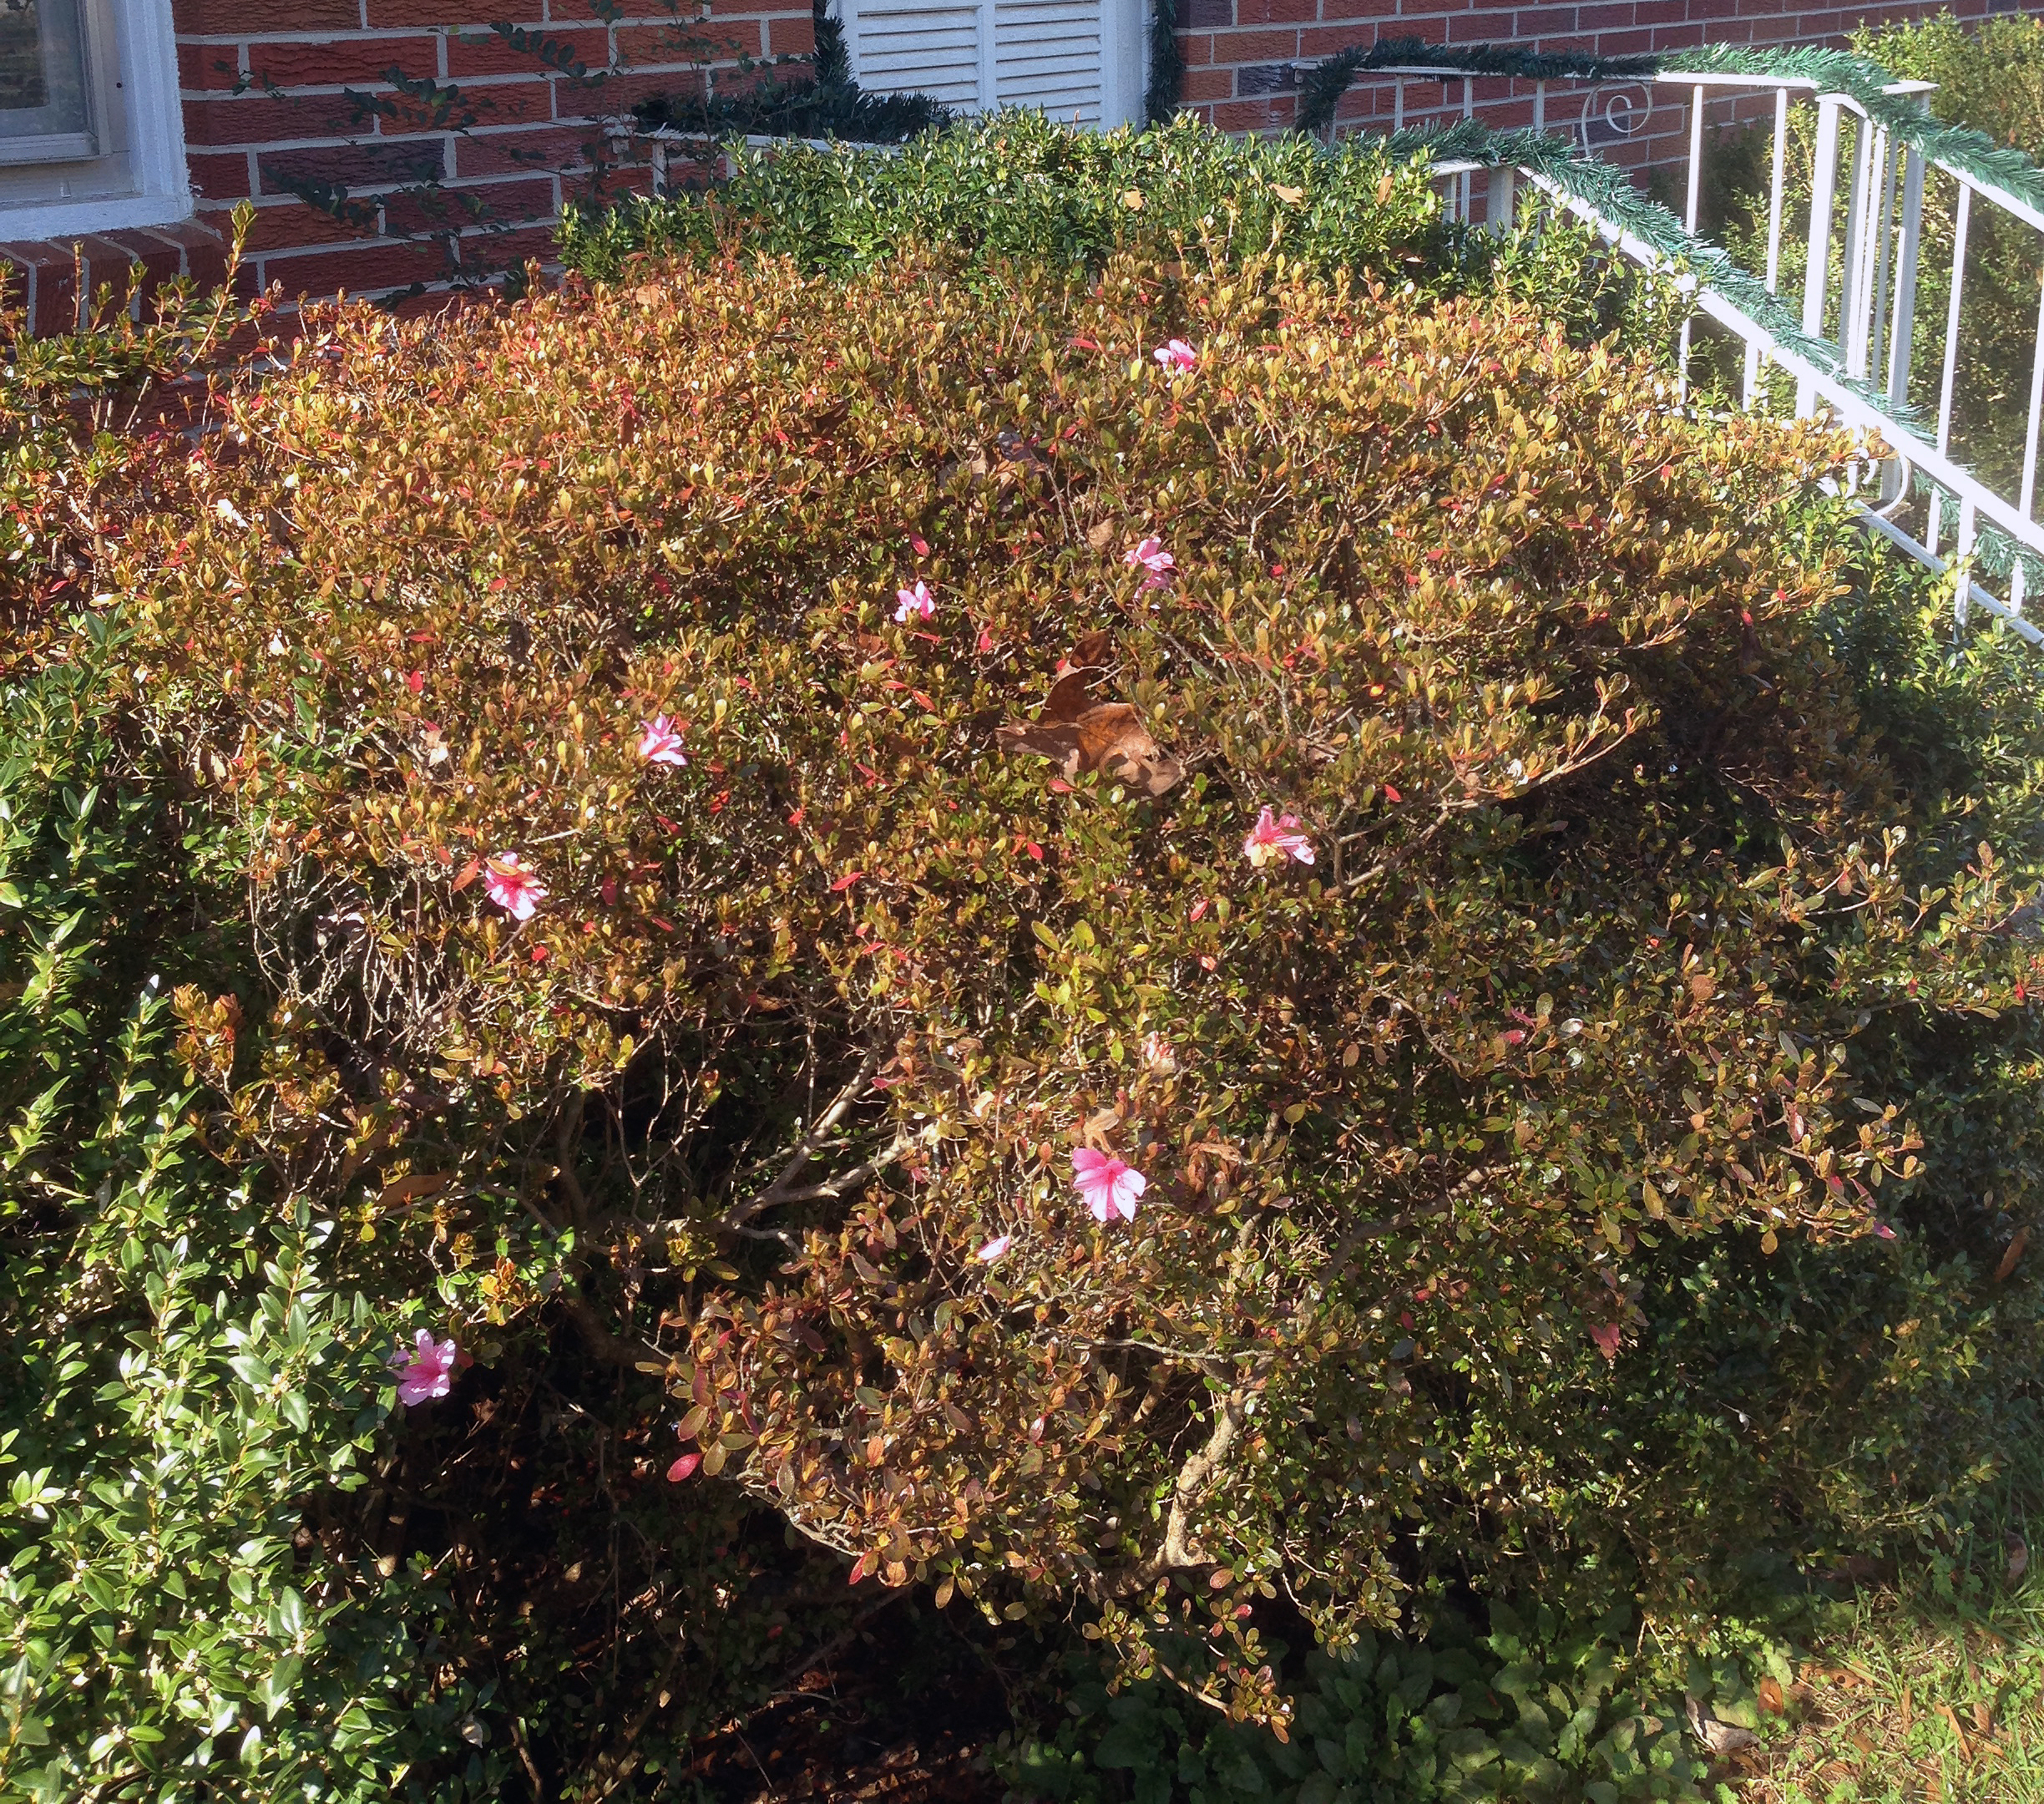 Springlike weather throughout the state cause ornamental shrubs and trees to bloom early. These azaleas blossomed the week before Christmas in Hart County.